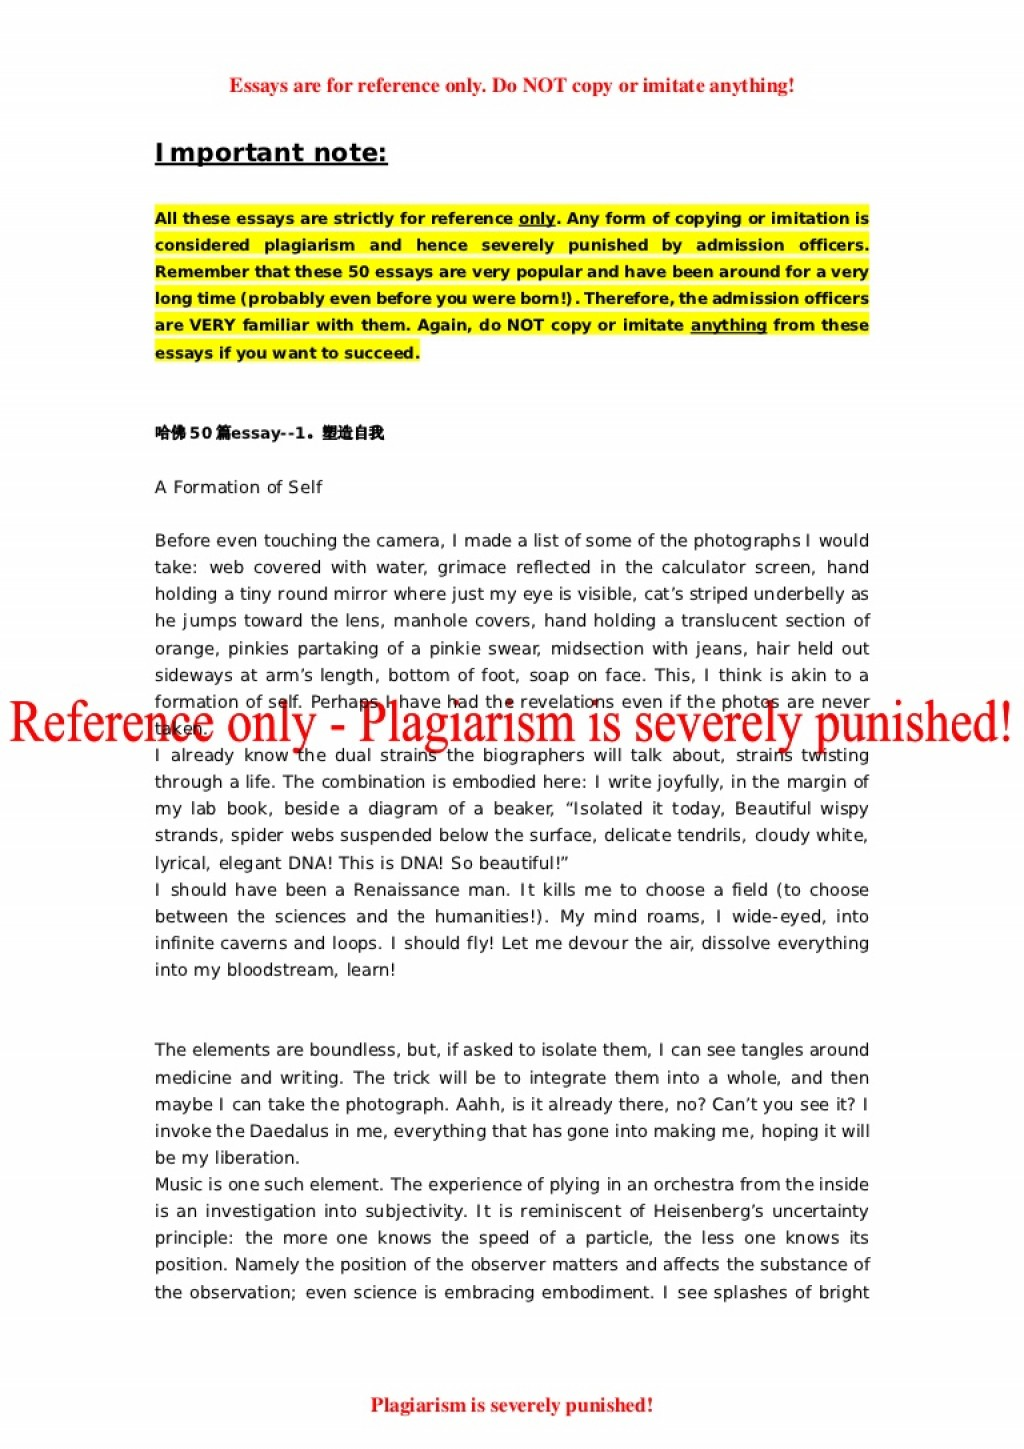 002 Harvard Accepted Essays Essay Example 50successfulharvardapplicationessays Phpapp02 Thumbnail Fantastic Business School Reddit College Book Large